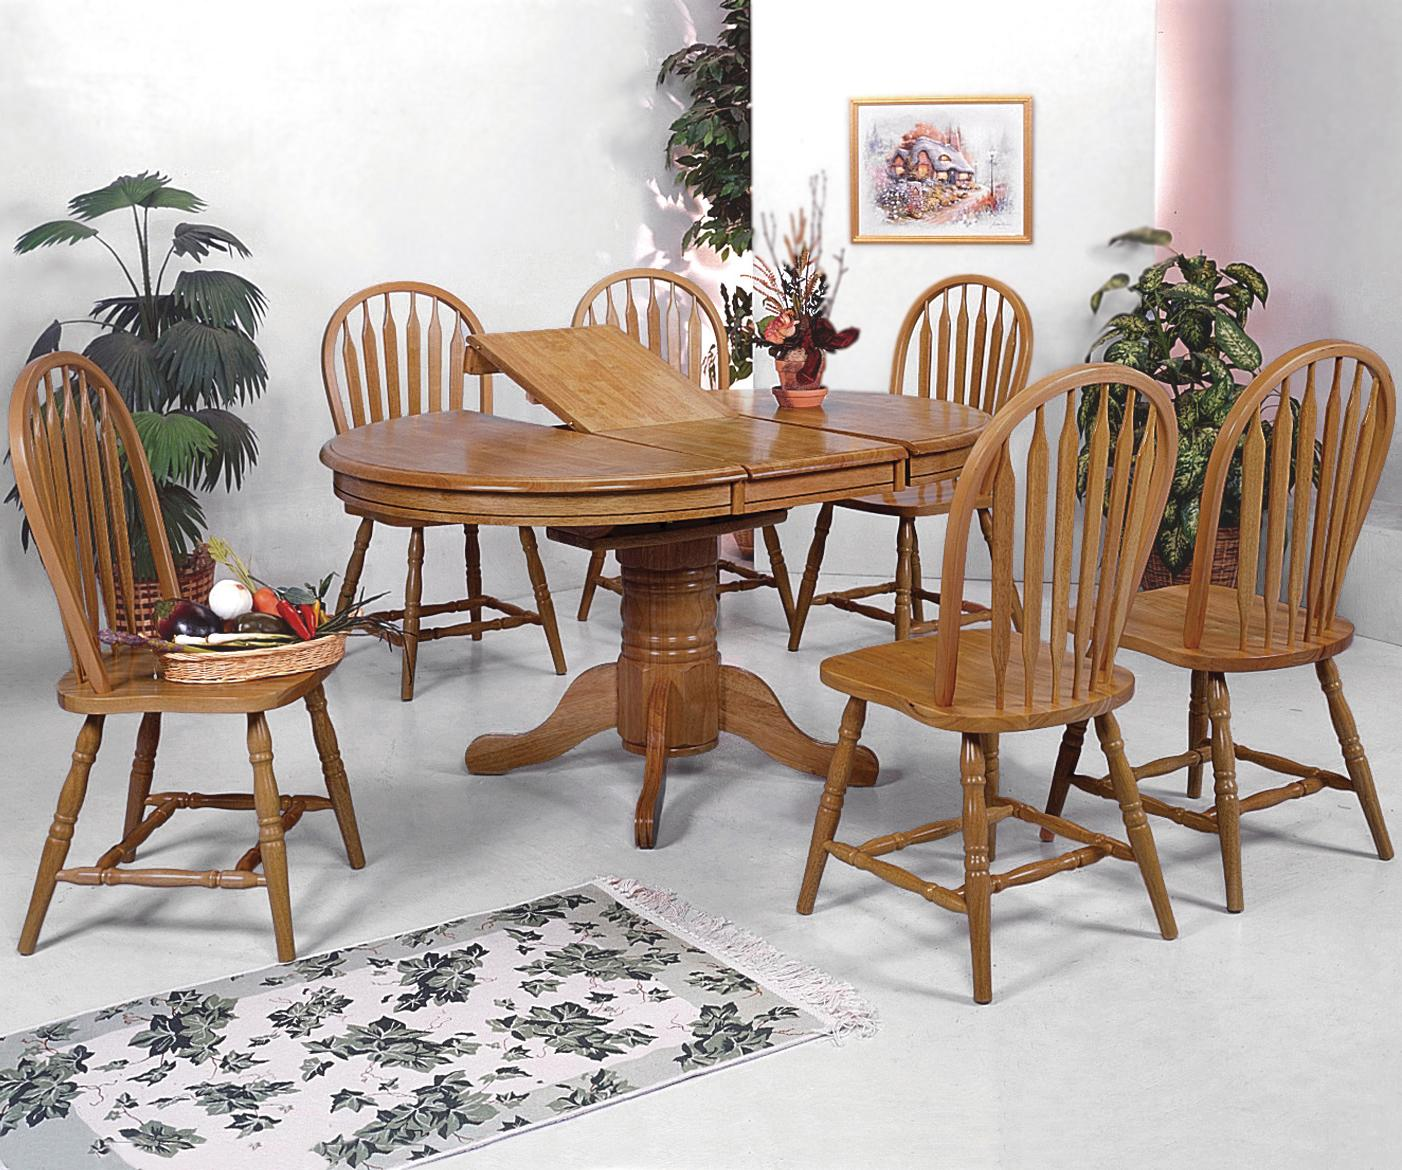 Windsor Solid 7 Piece Oval Dining Table and Side Chairs by Crown Mark at Dunk & Bright Furniture